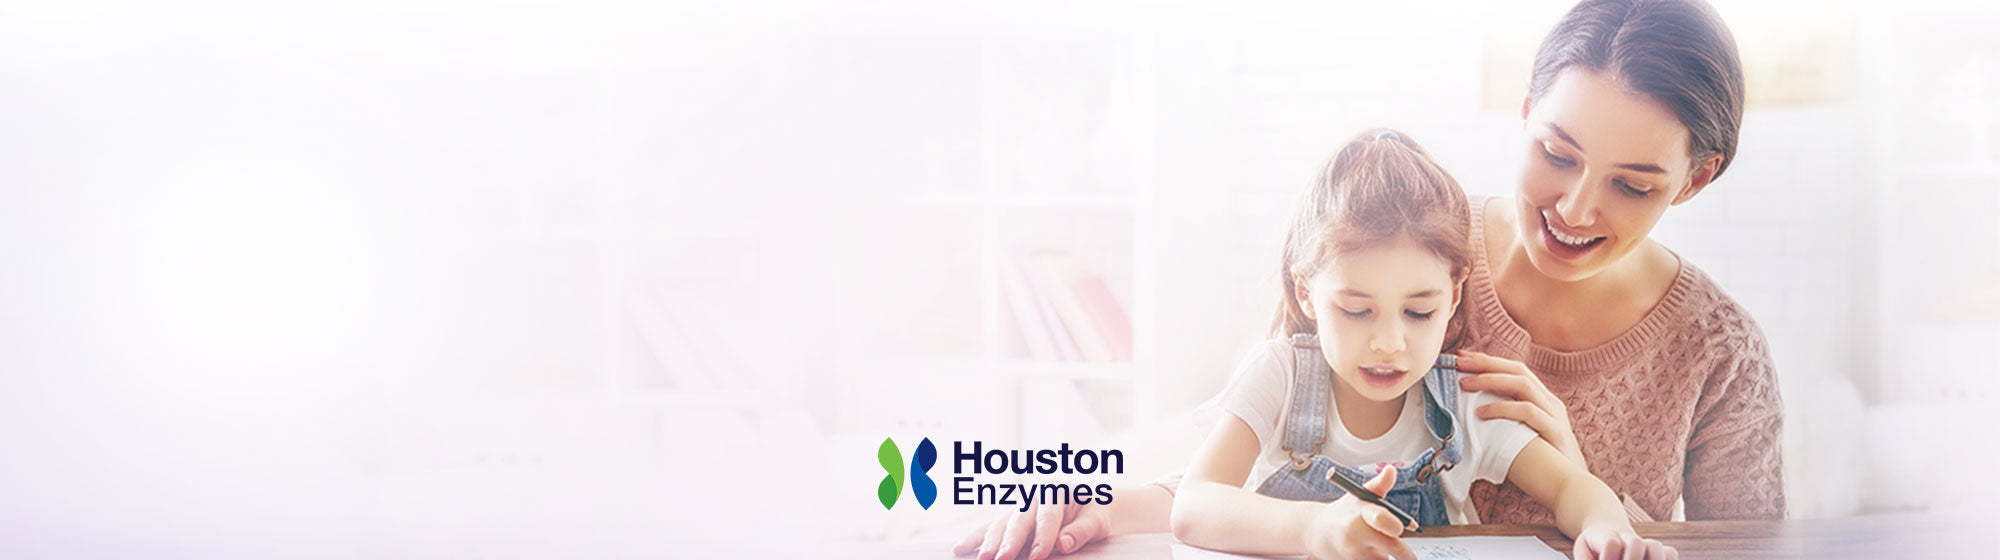 Discover what enzymes can do for you